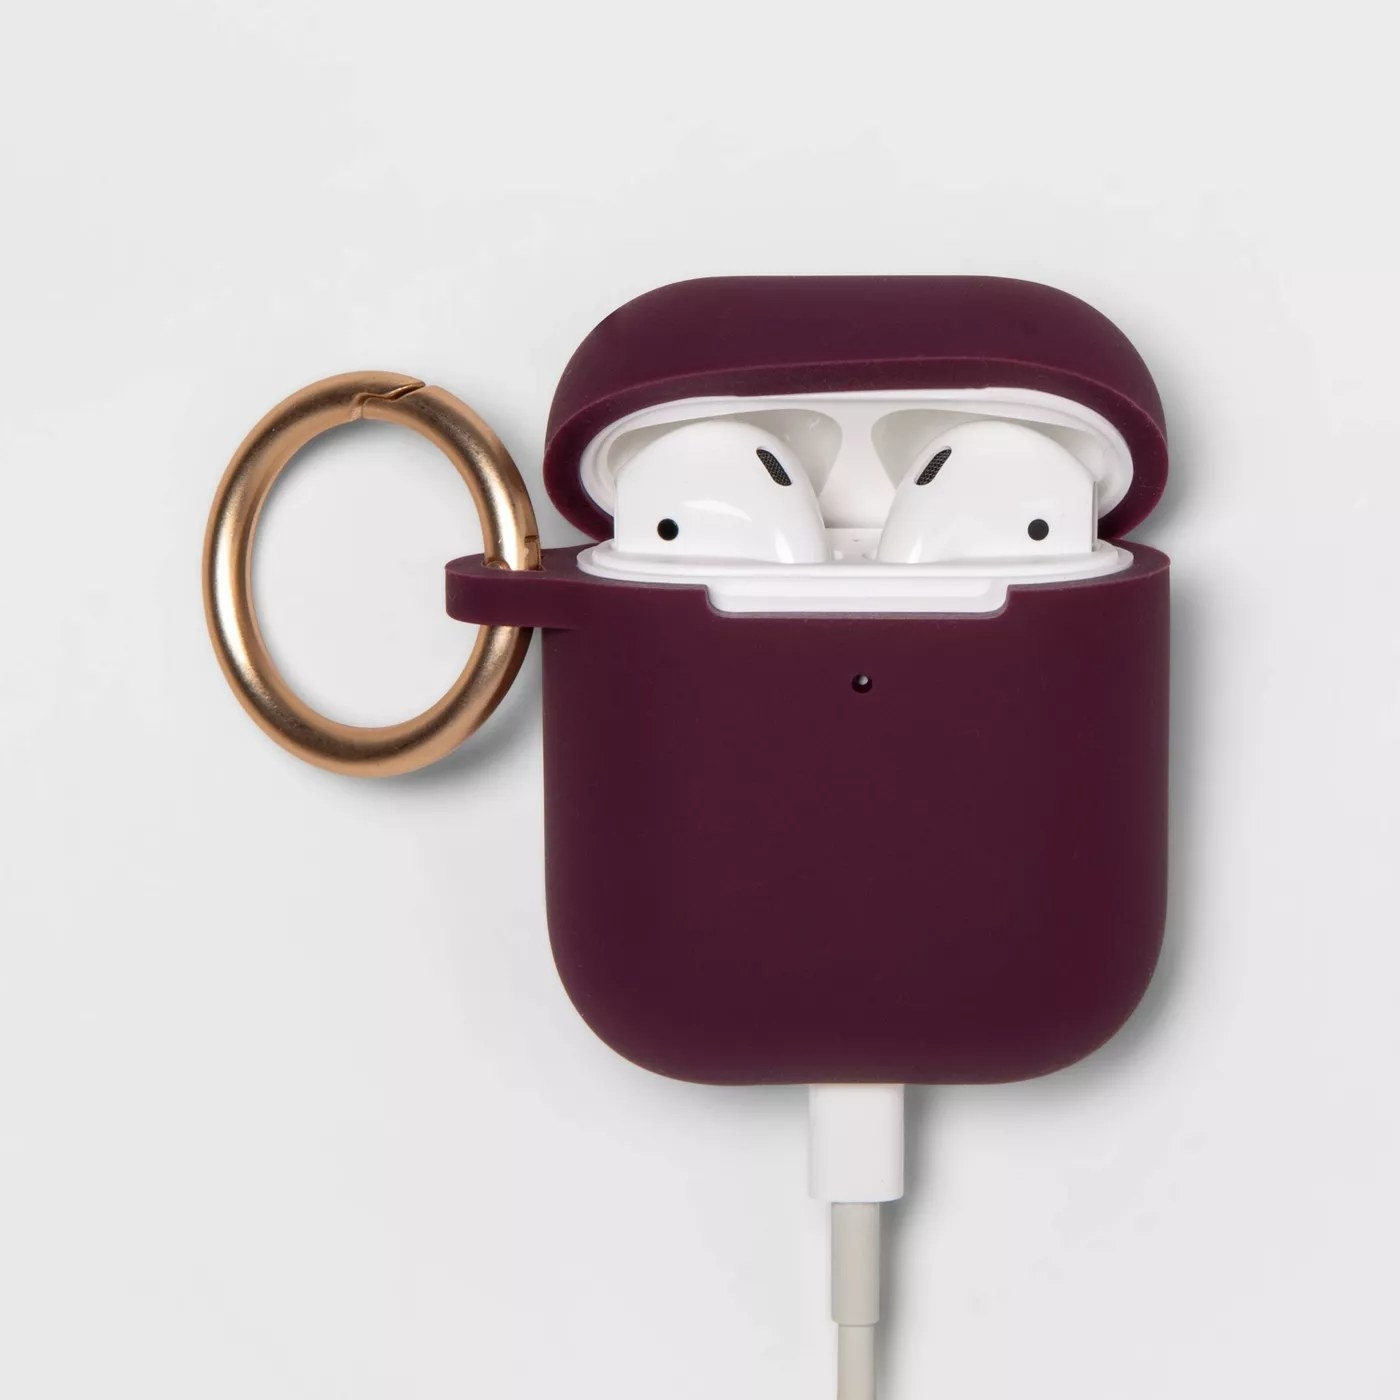 The Airpod case with Airpods inside and a gold carabiner clip